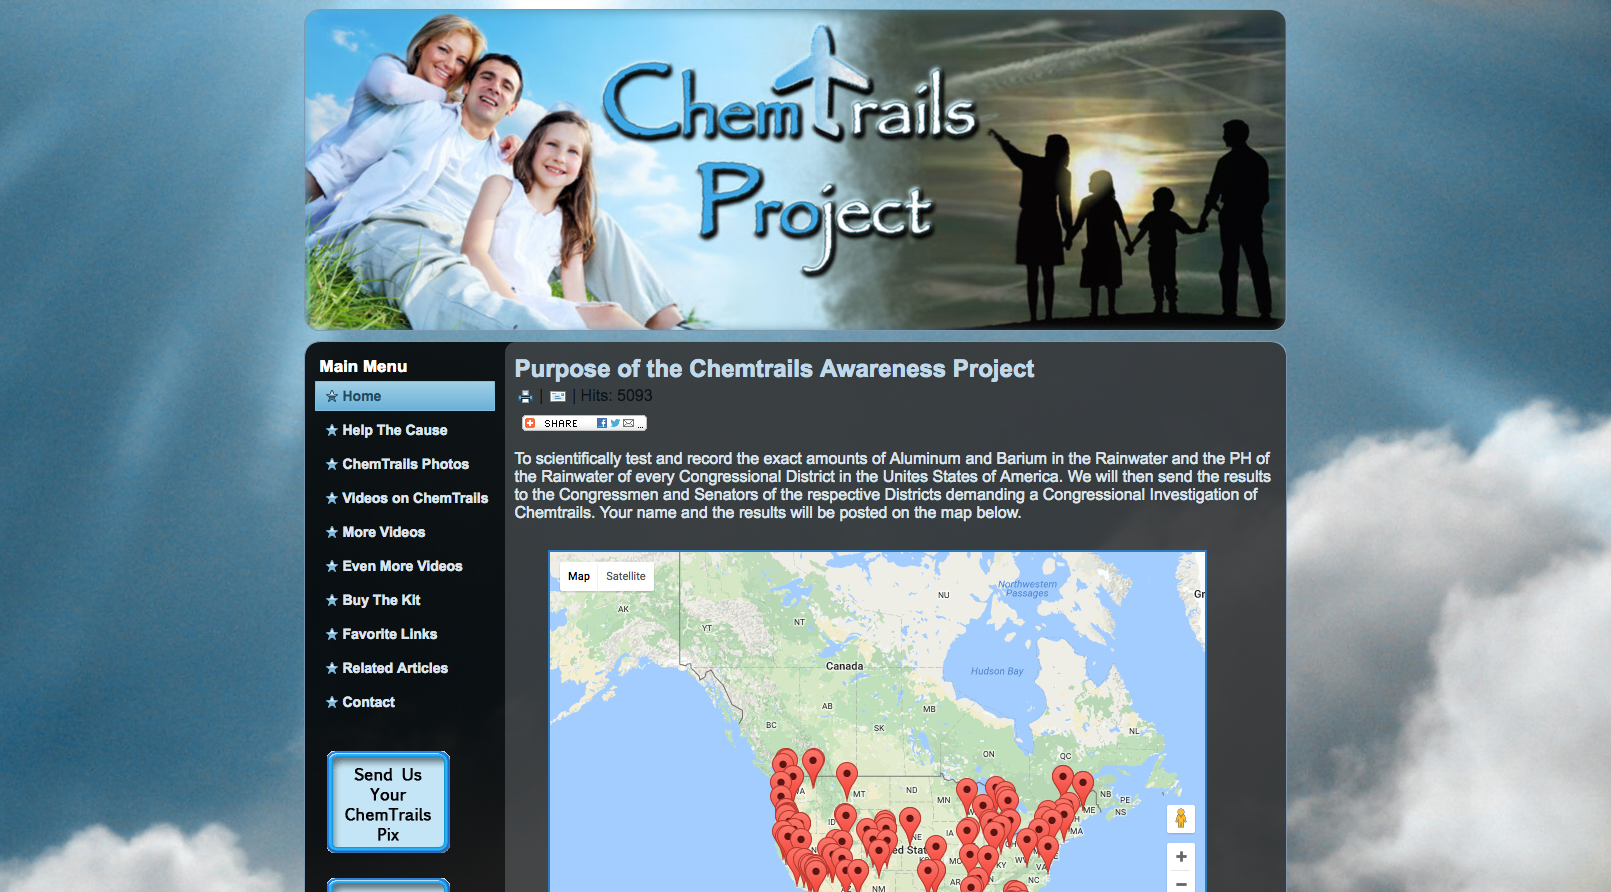 Chemtrails Project